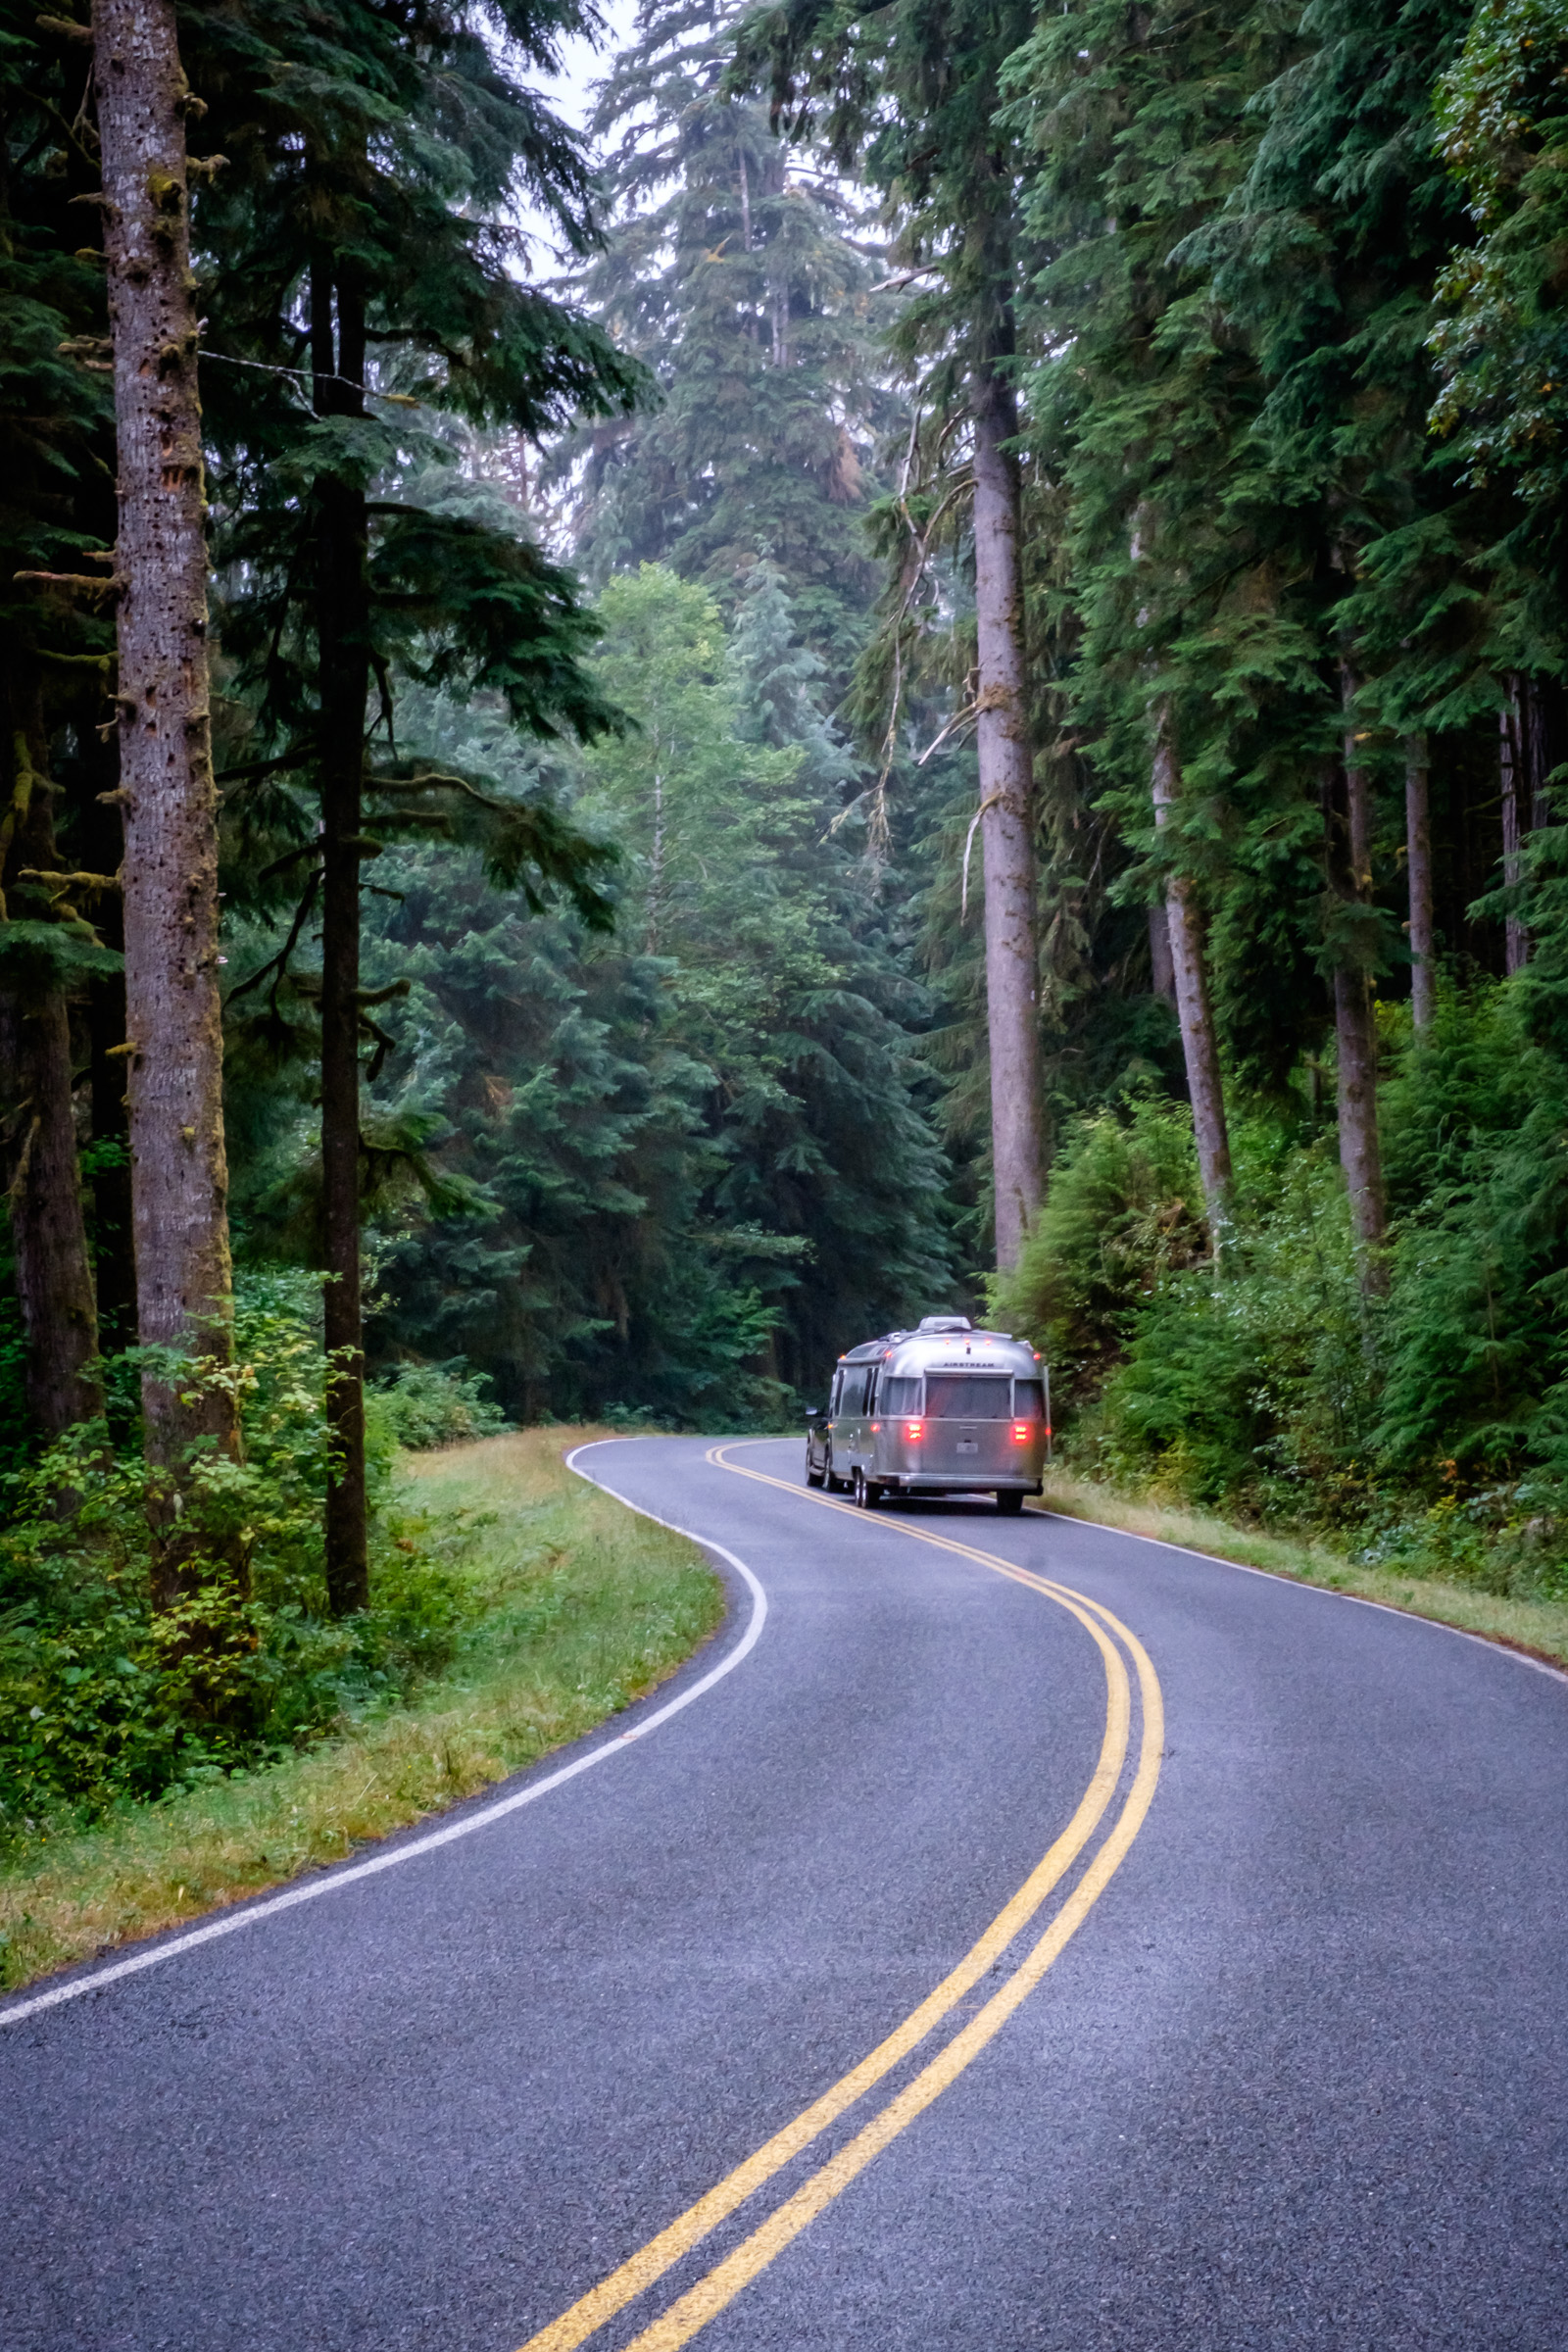 Wally, take us to Sol Duc Falls.